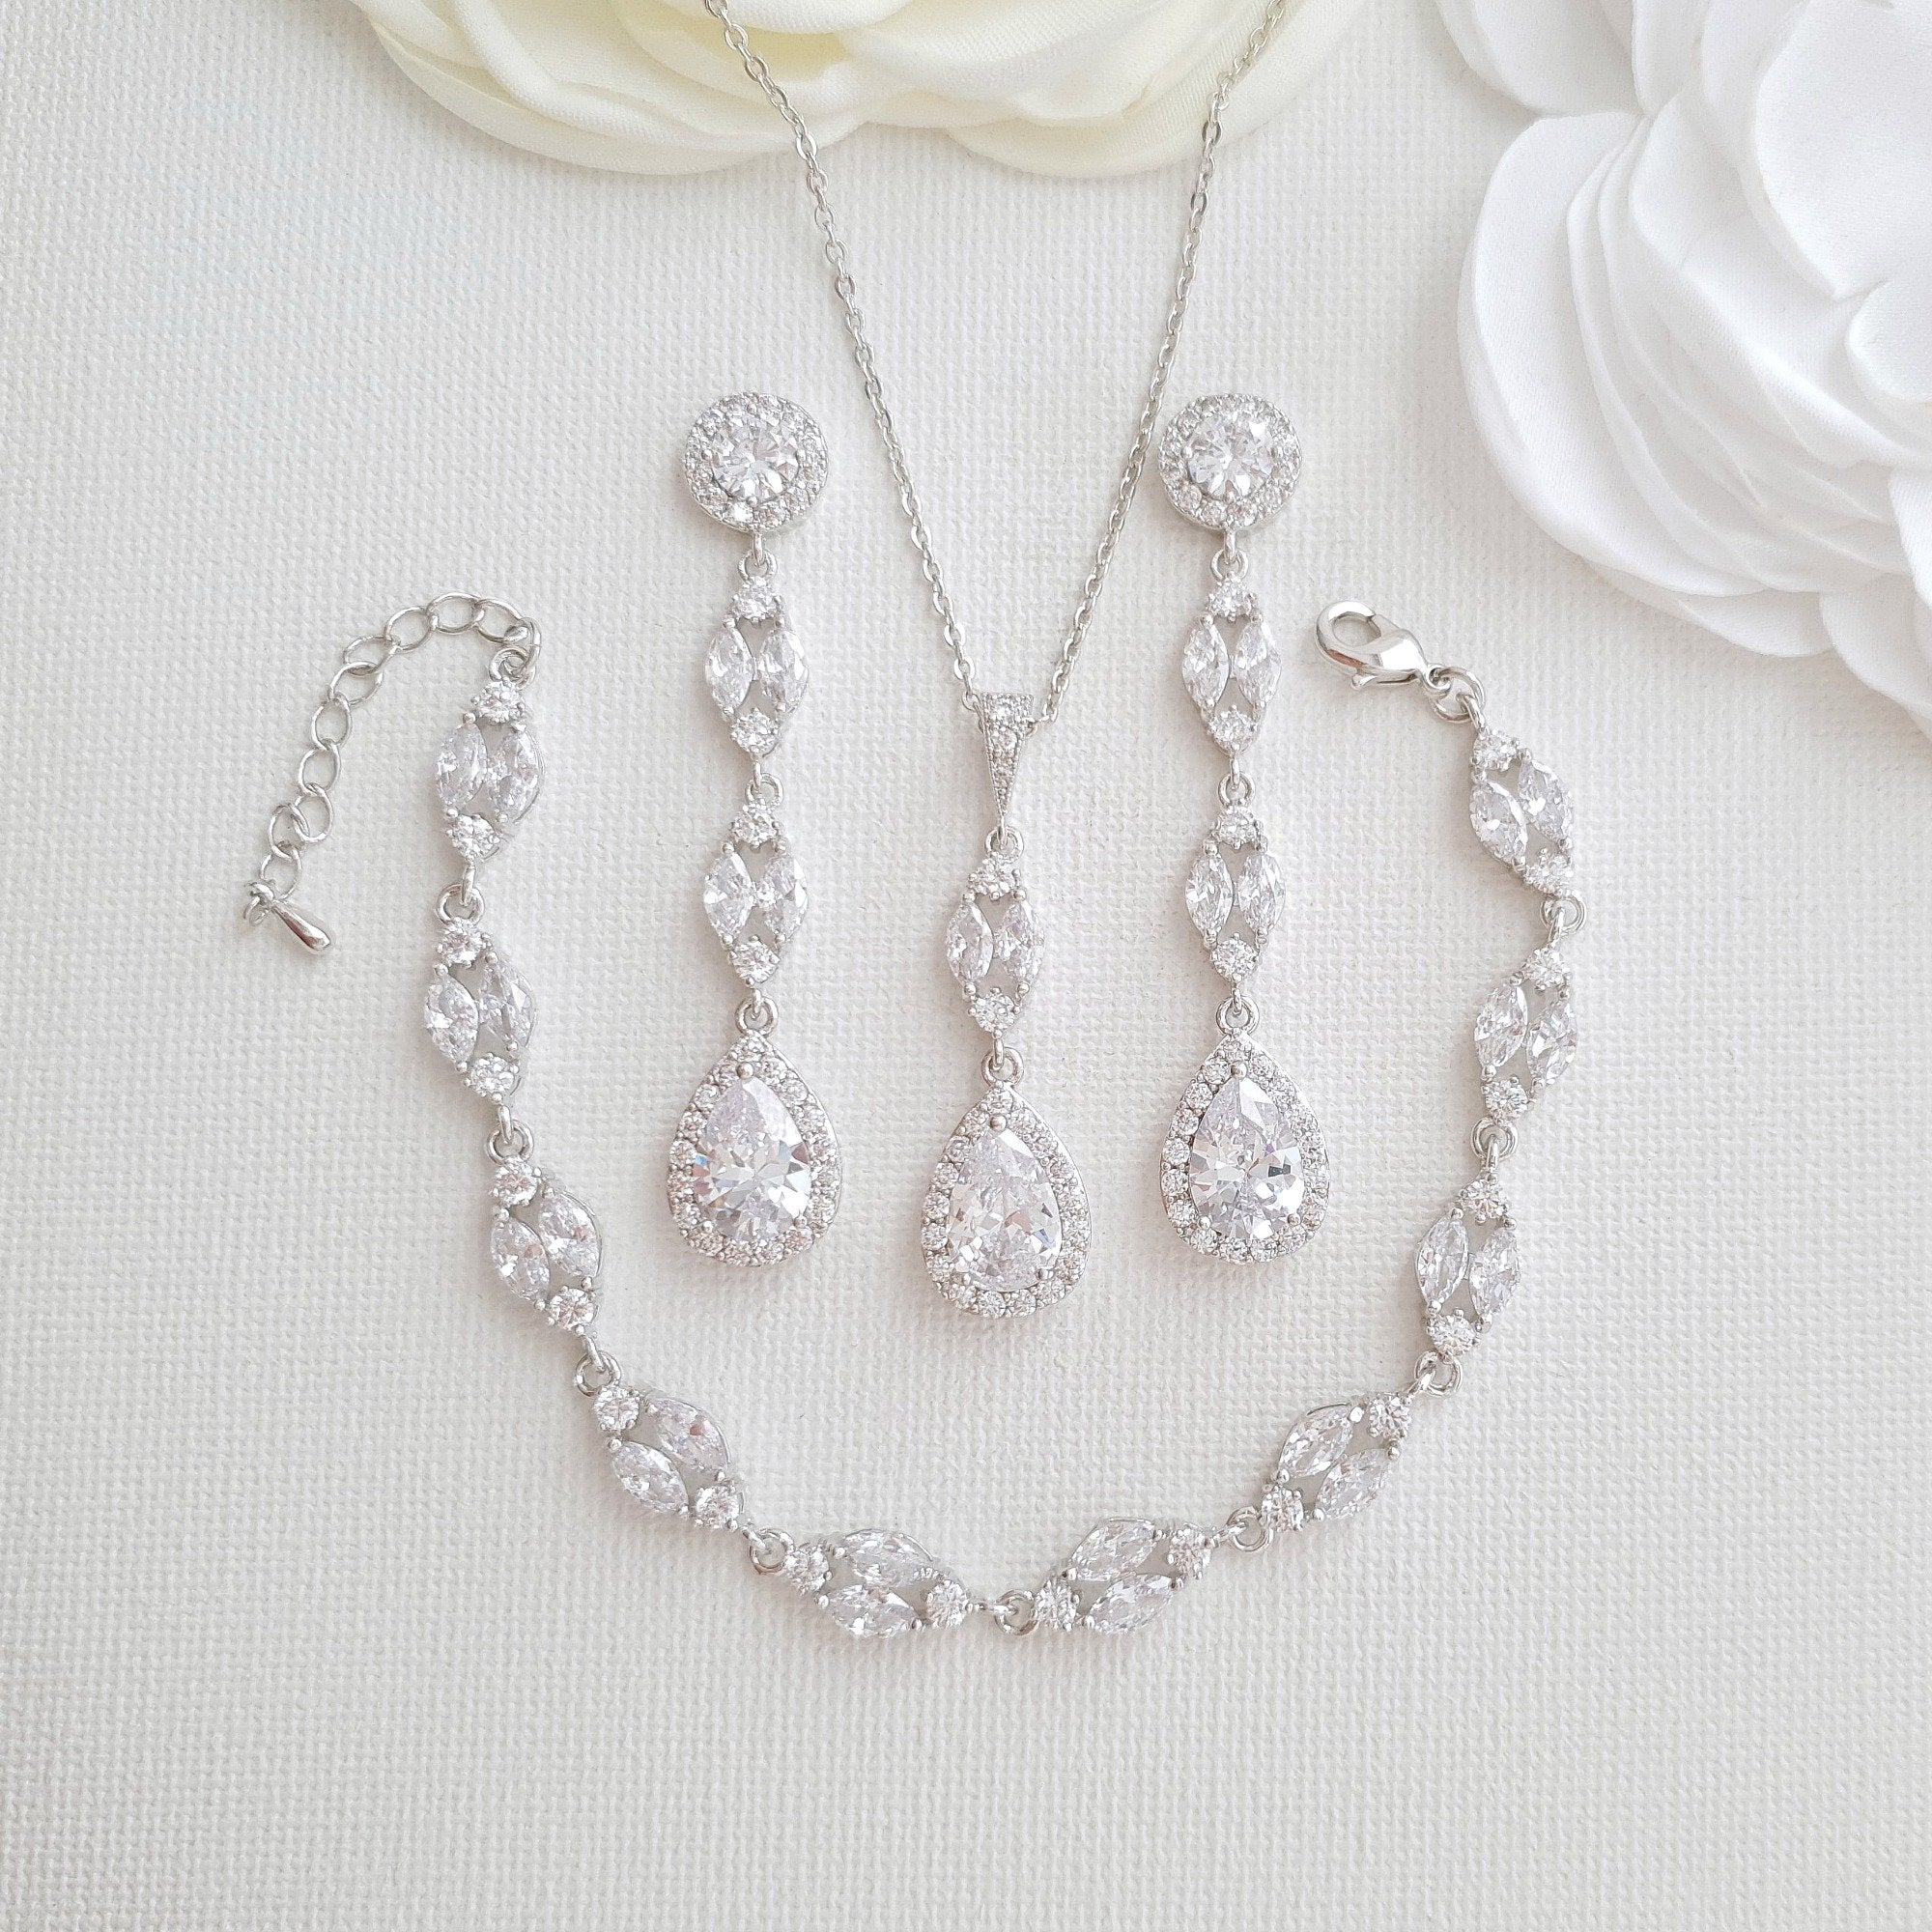 Long Earrings Drop Necklace & Bracelet Bridal Jewelry Set- Hayley - PoetryDesigns